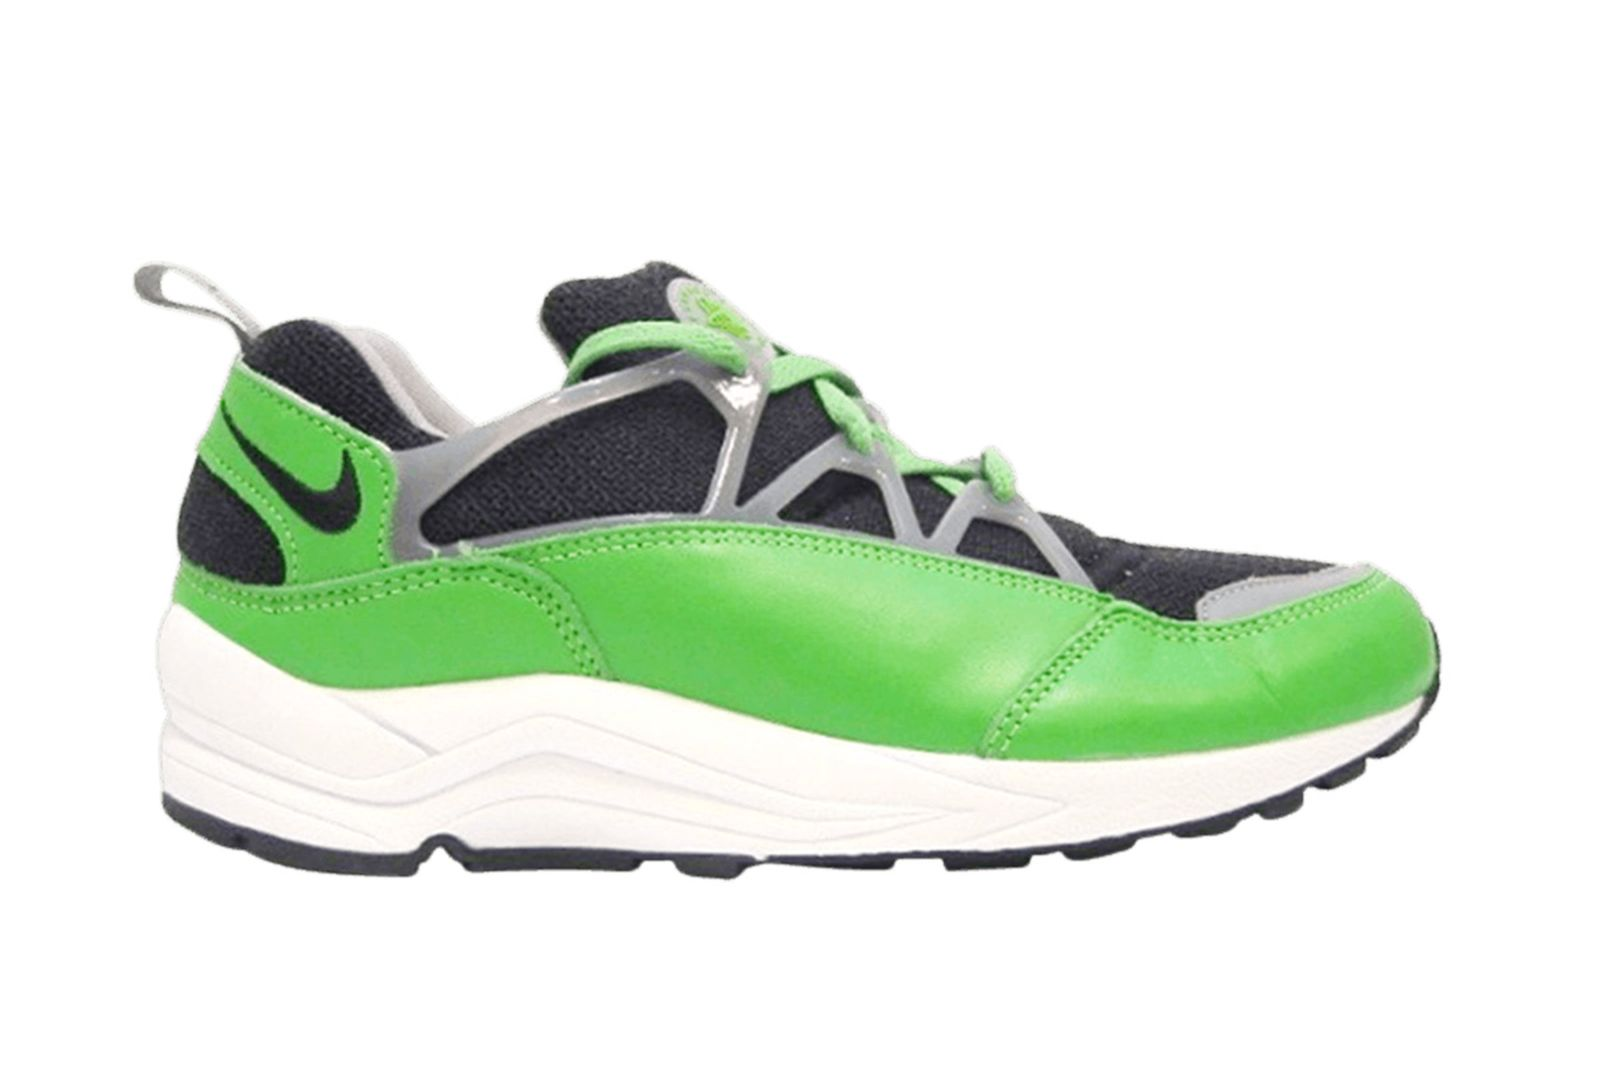 stussy-nike-sneaker-collaboration-roundup-04